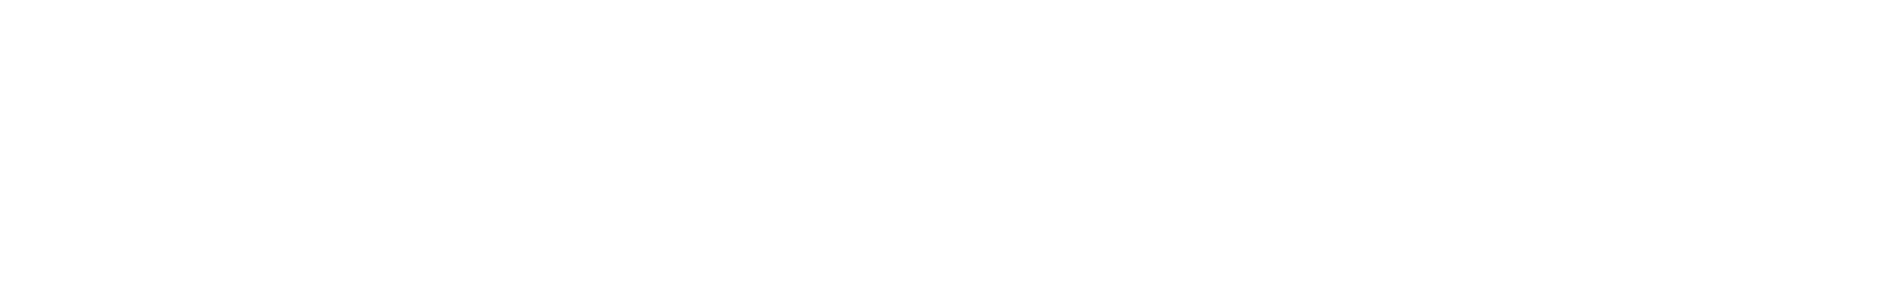 Tech Company Funding & Legal Issues White Logo